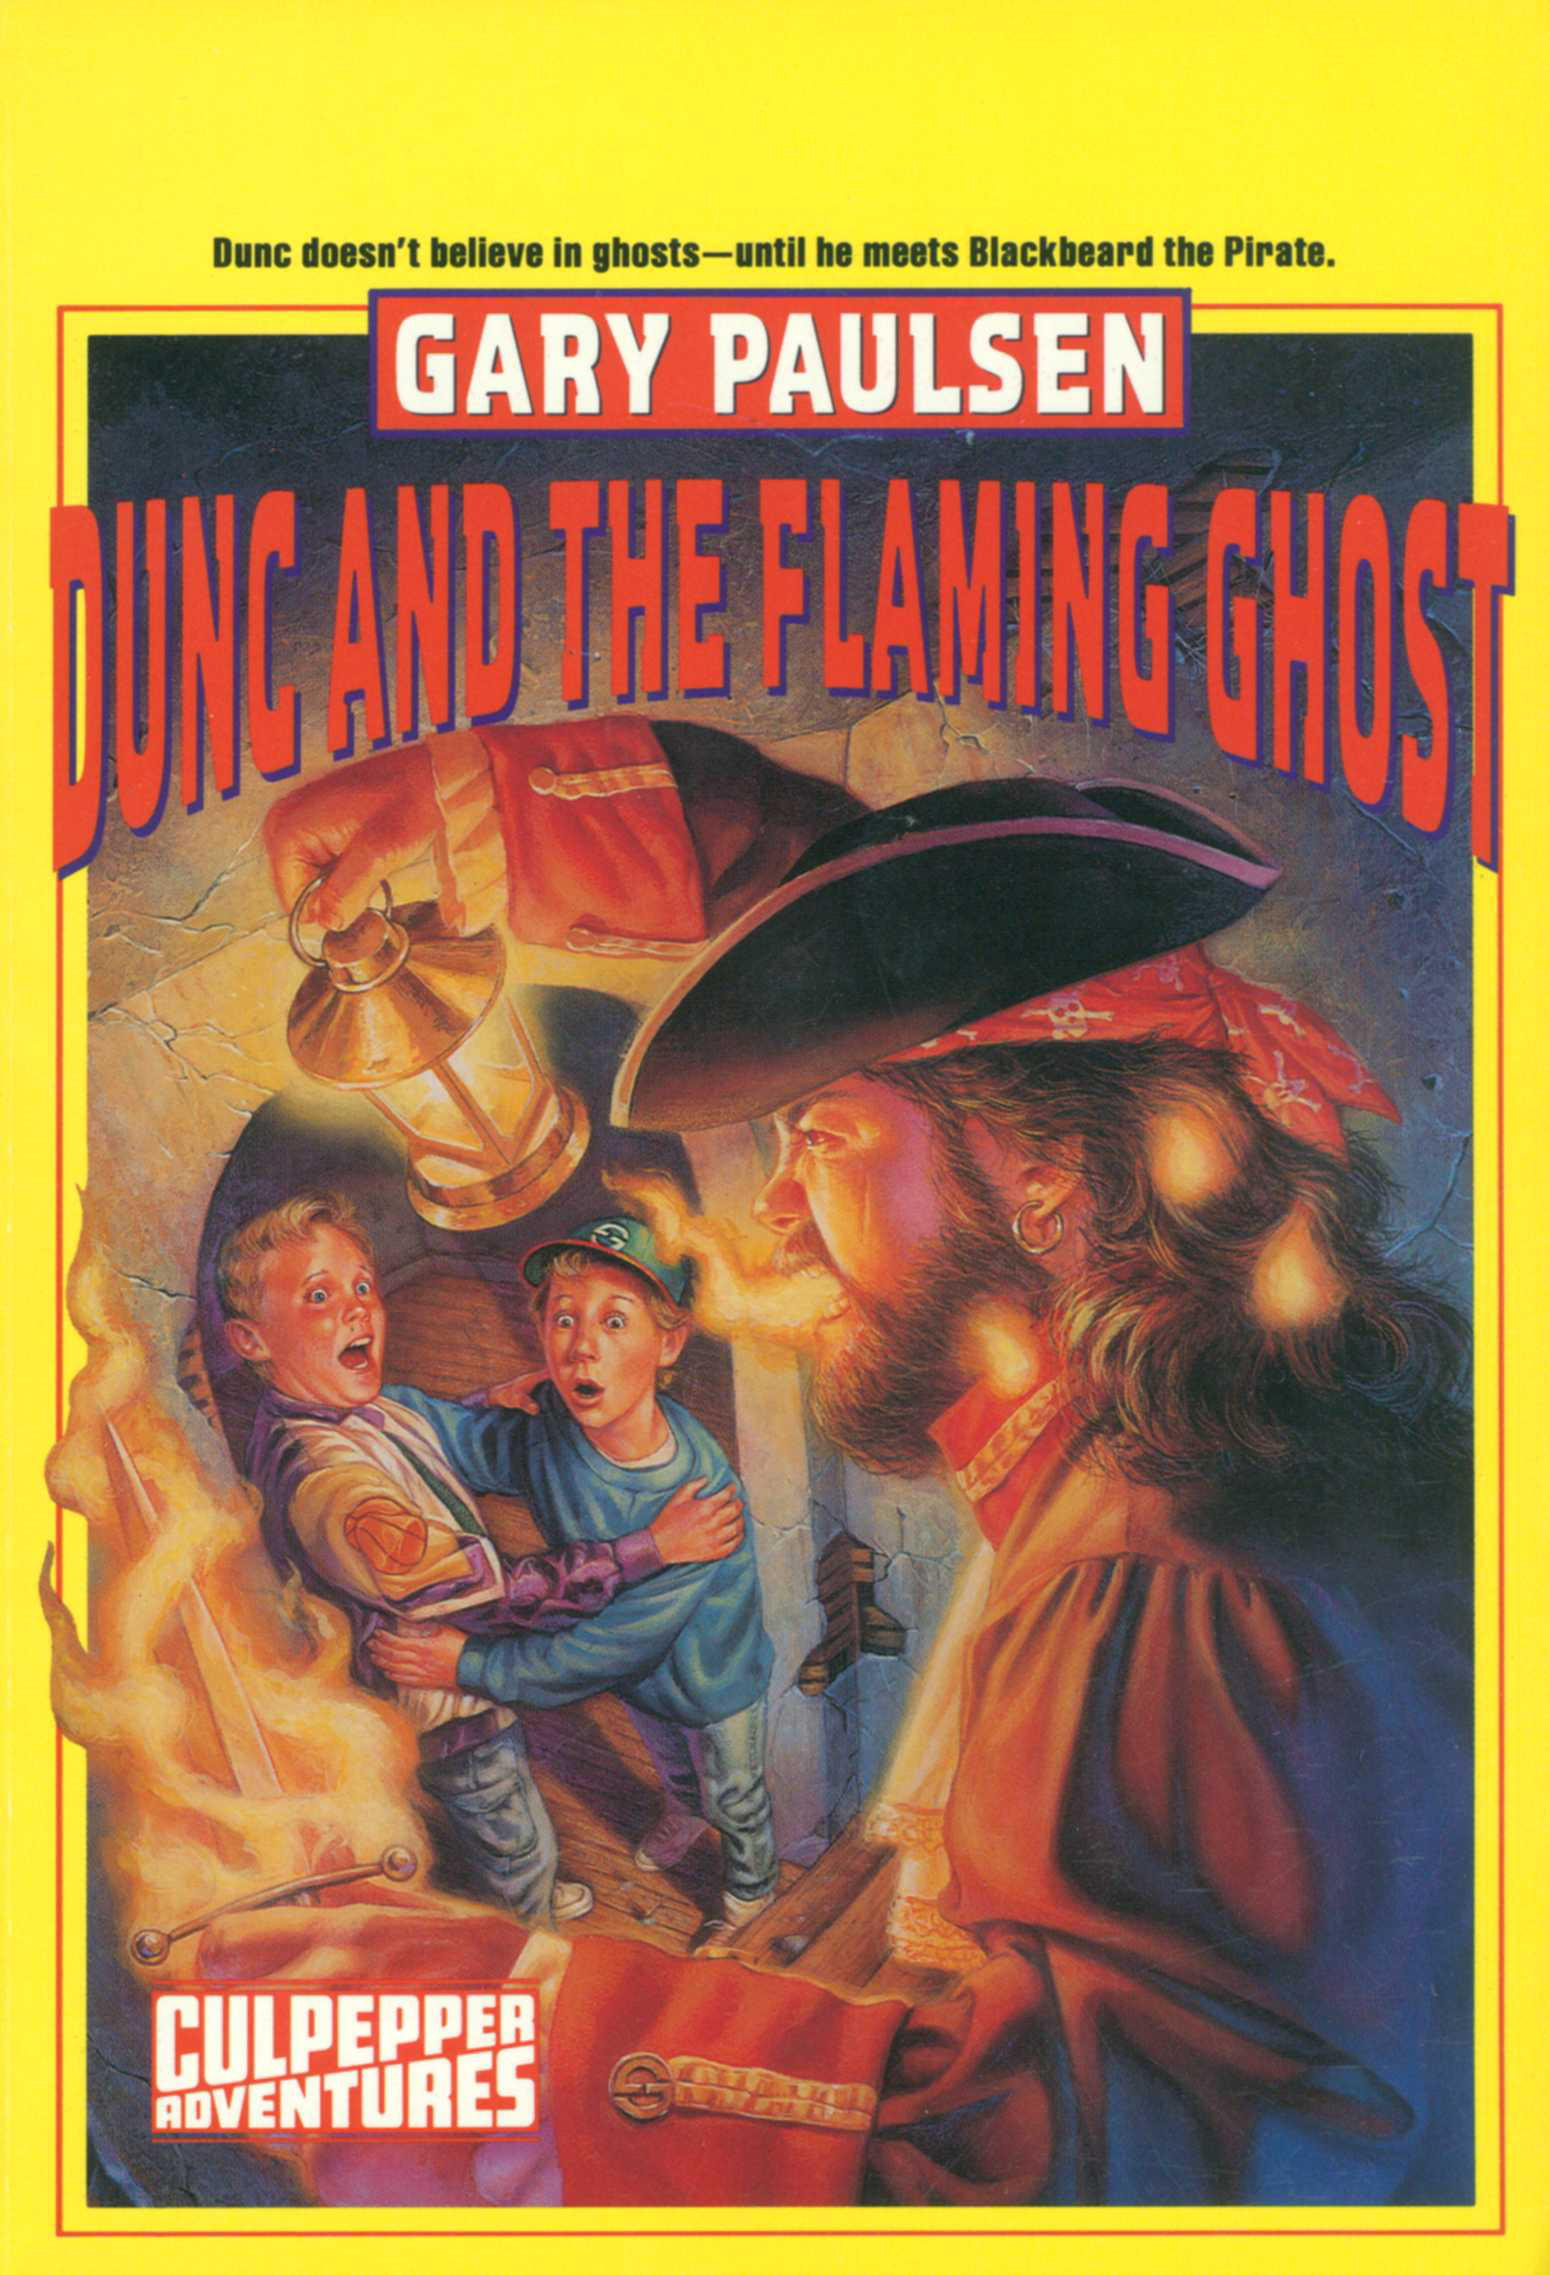 DUNC AND THE FLAMING GHOST